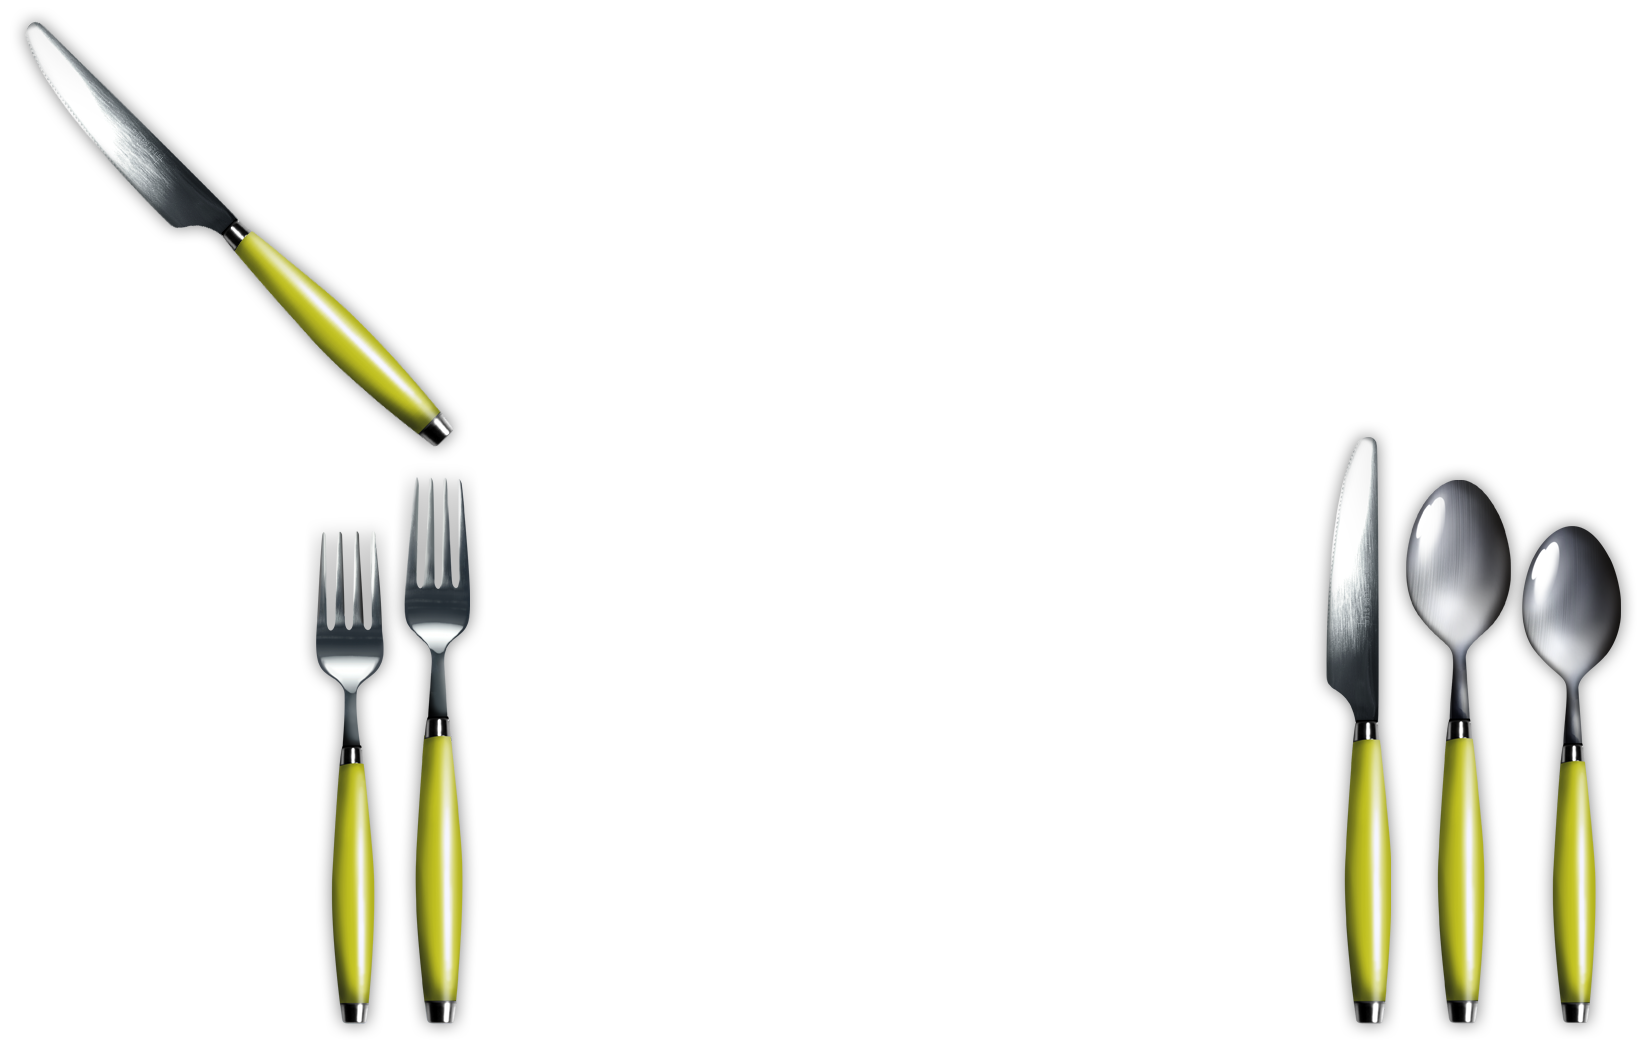 Knife clipart silverware plate. Colorama by fiesta